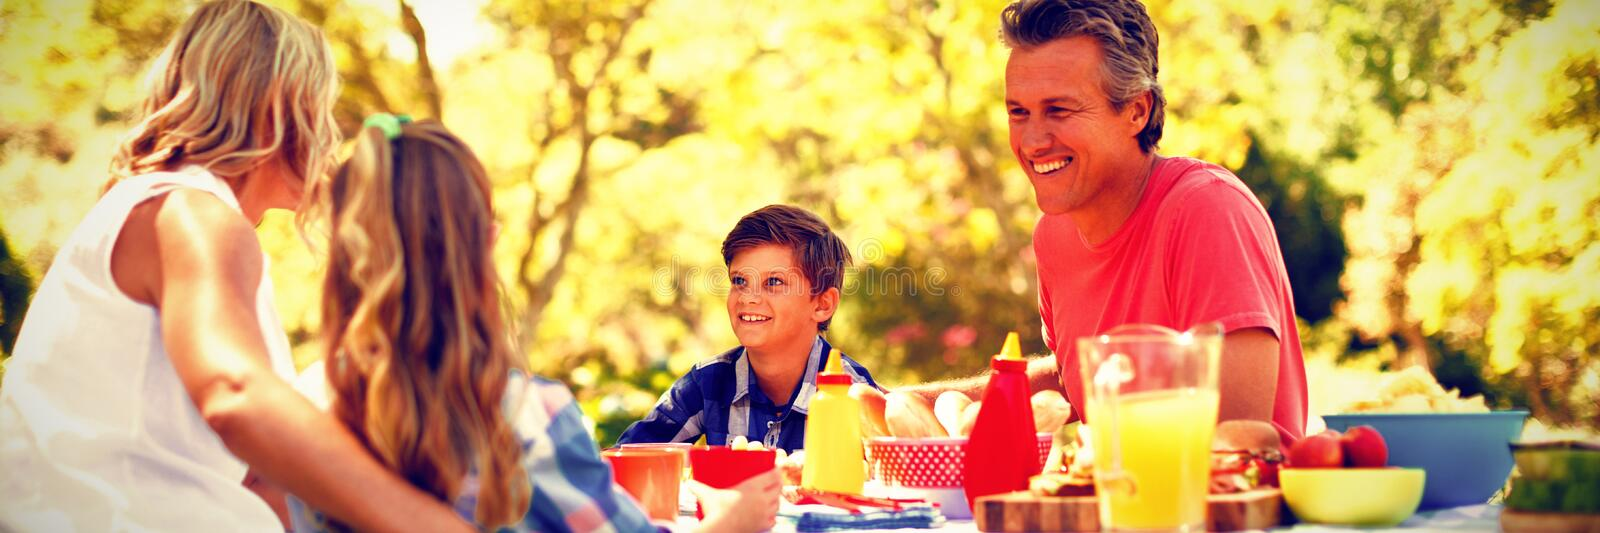 Happy family interacting with each other while having meal in park stock image